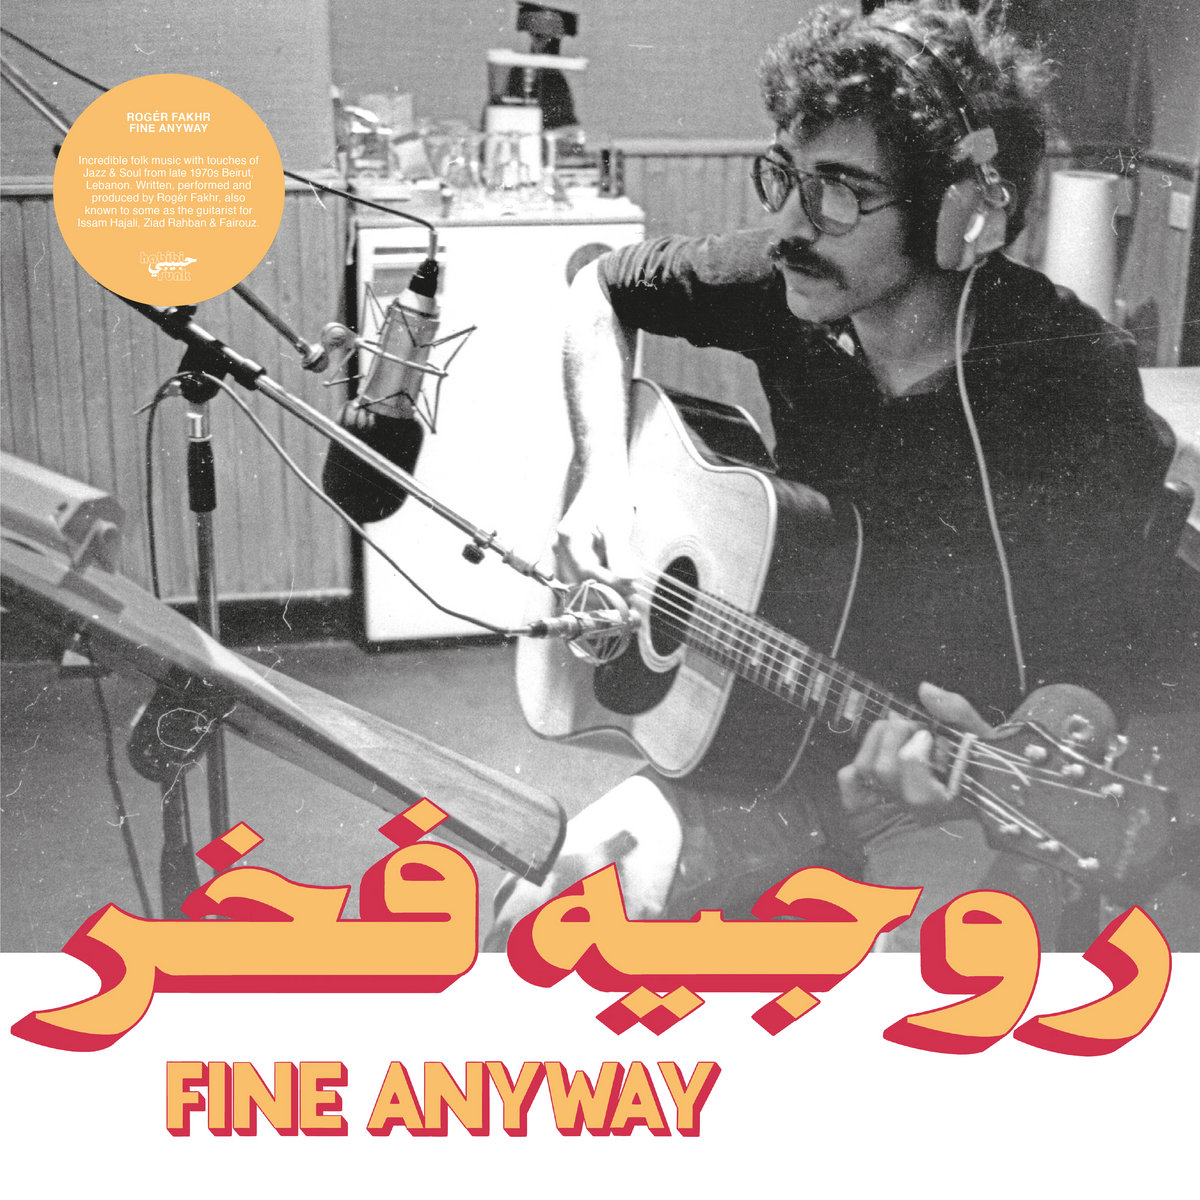 Roger Fahkr - Fine Anyway